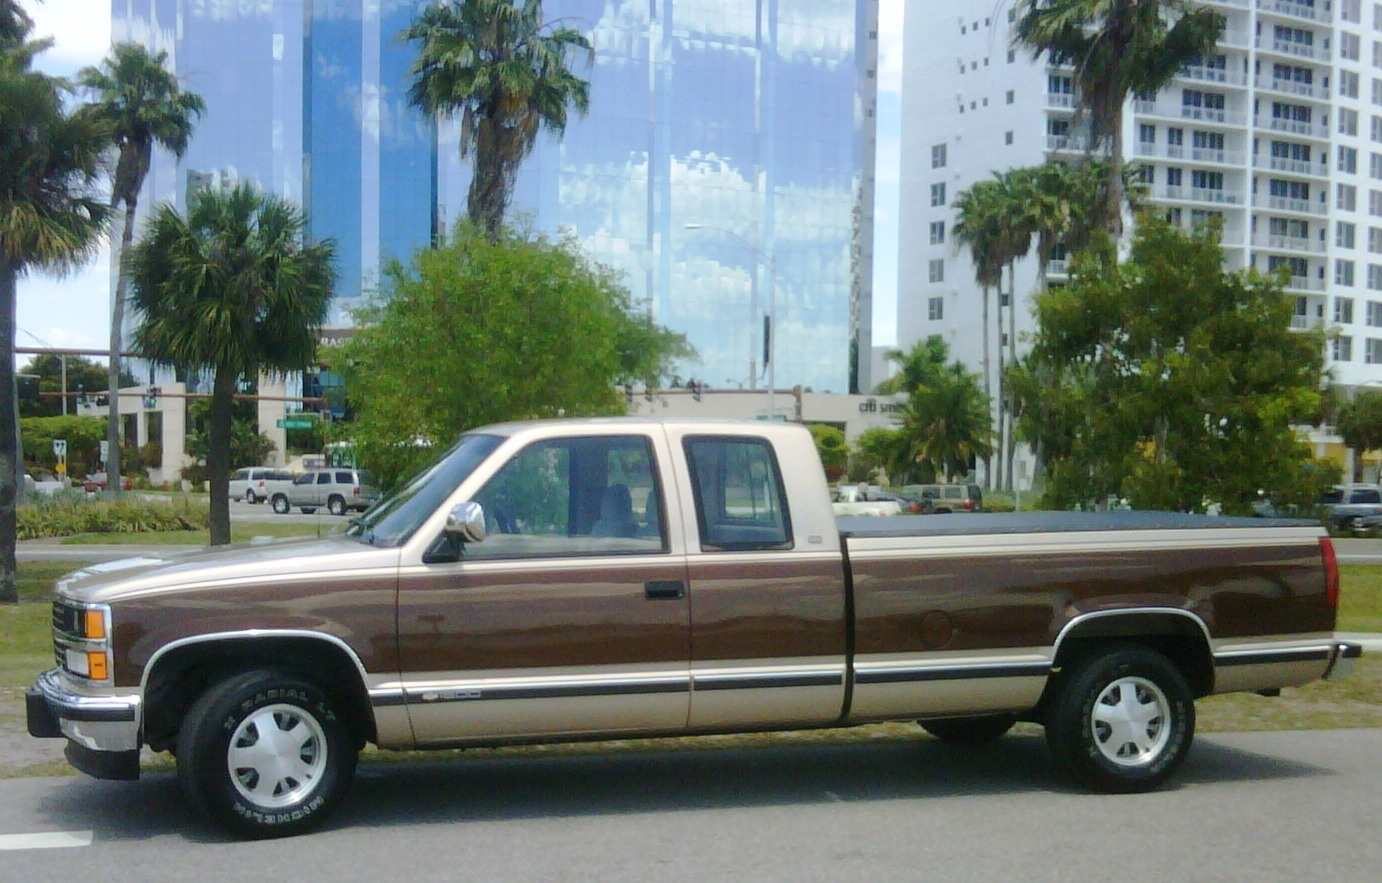 All Chevy 95 chevy 3500 diesel : Chevrolet C/K 1500 Questions - It would be interesting how many ...